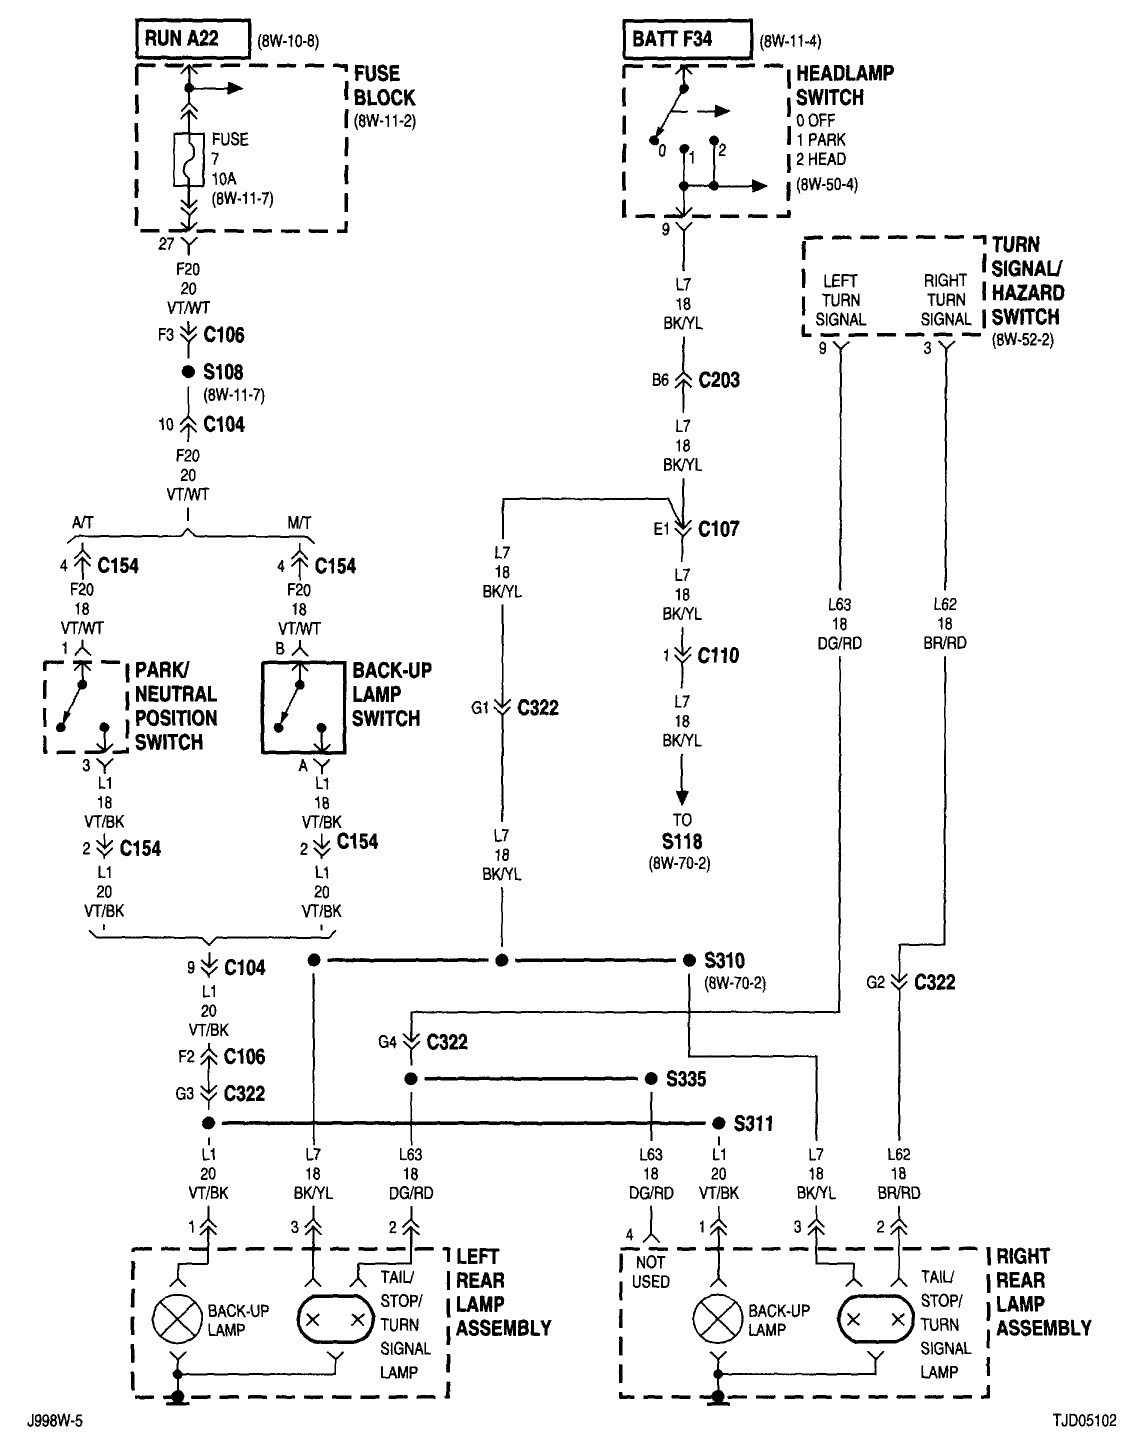 Wiring Diagram For 2002 Jeep Wrangler - wiring diagram on ... on